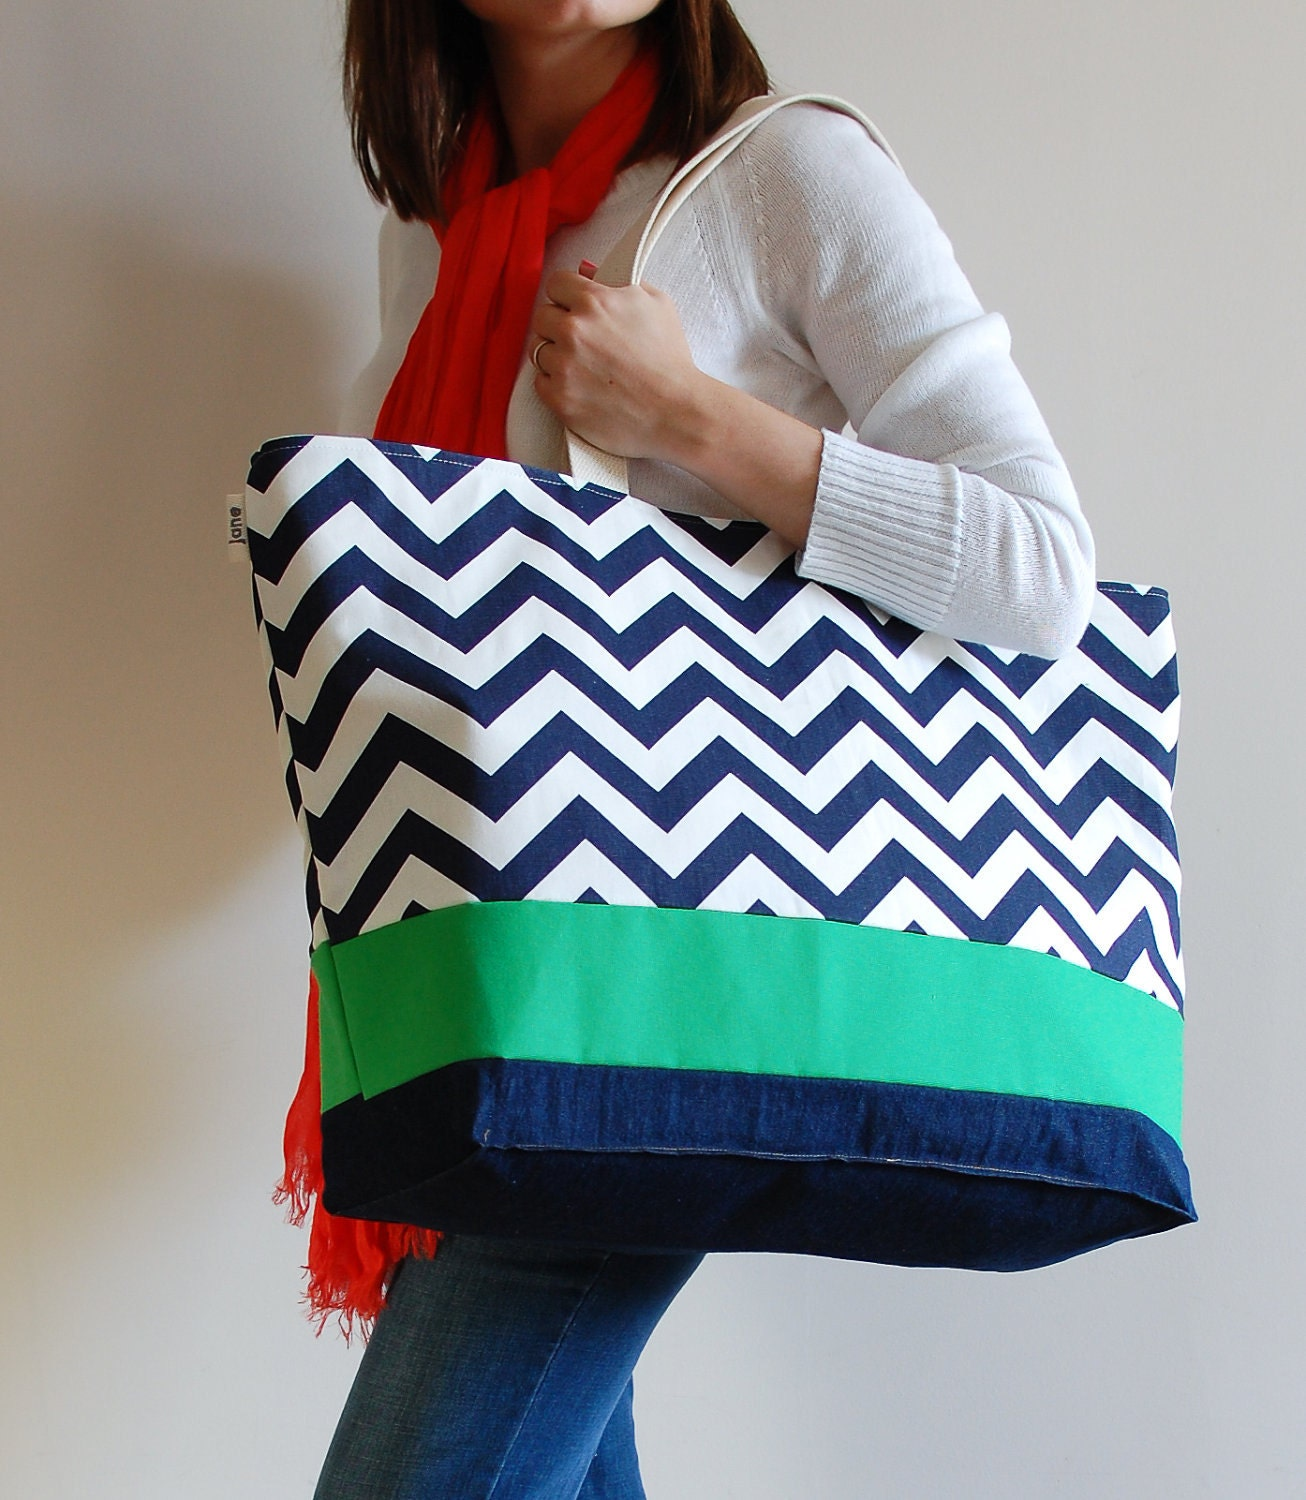 EXTRA Large Beach Bag // Tote in Navy Chevron with Green